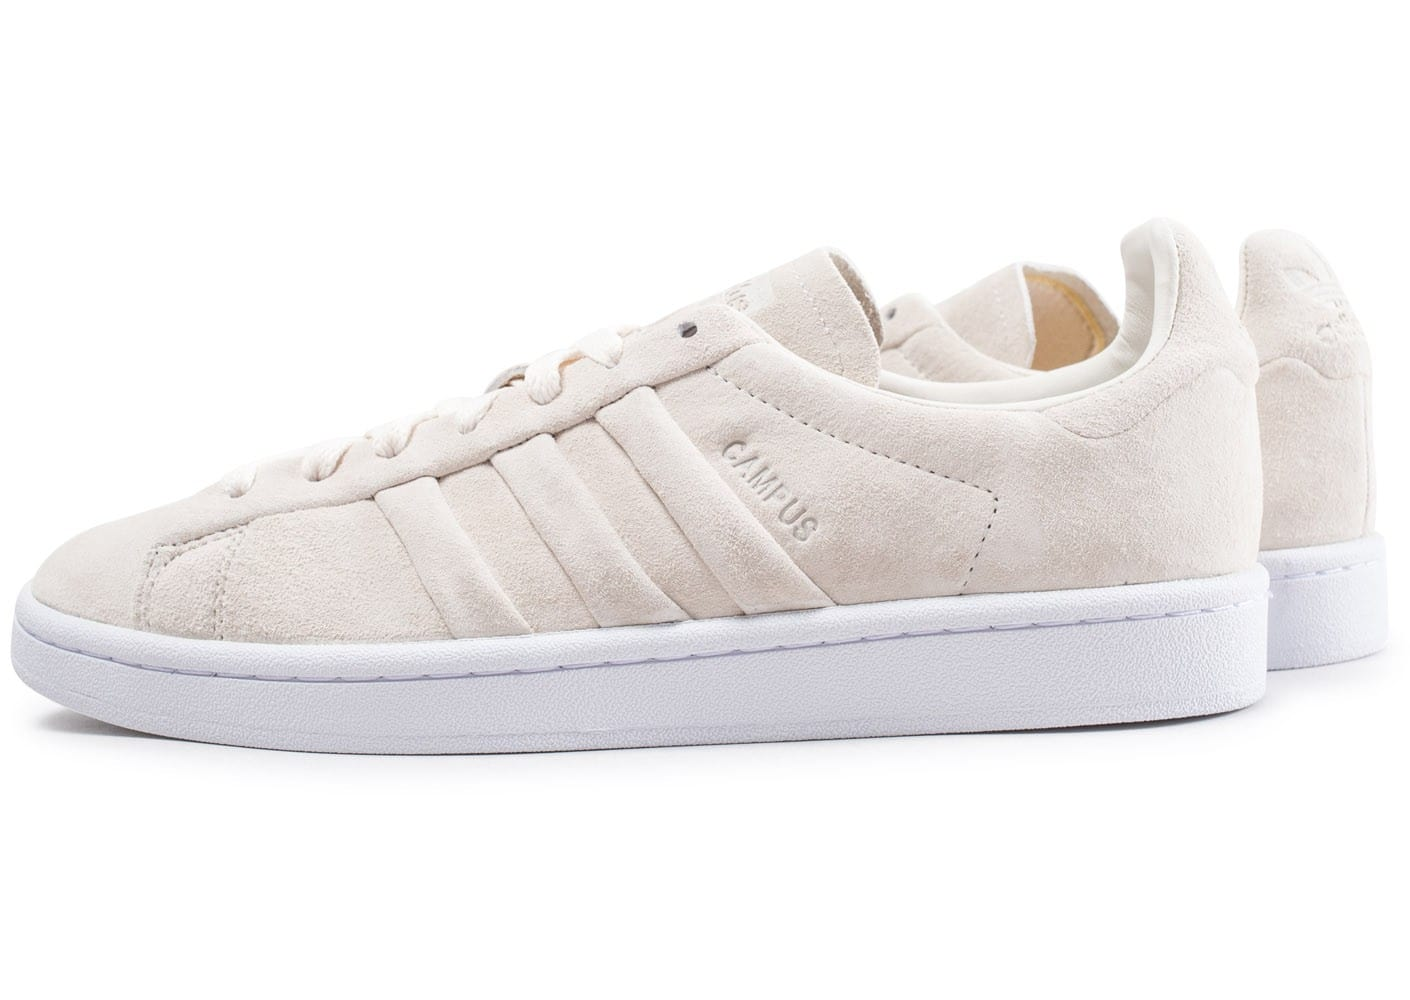 huge selection of c3b7d b4334 Cliquez pour zoomer Chaussures adidas Campus Stitch and Turn beige vue  extérieure ...